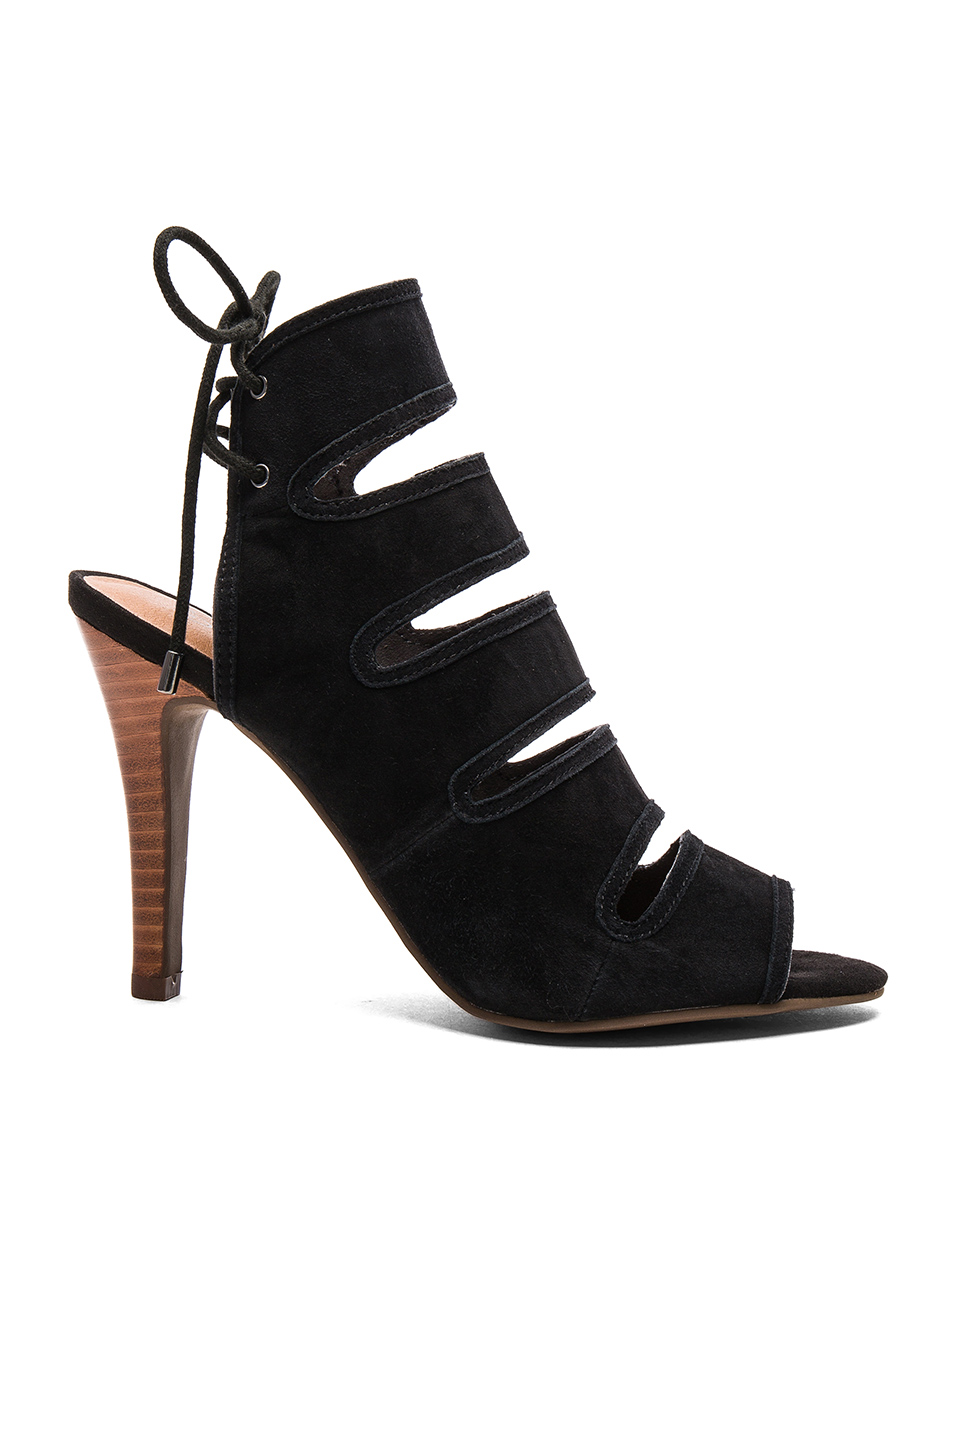 Seychelles Play Along Heel in Black Suede